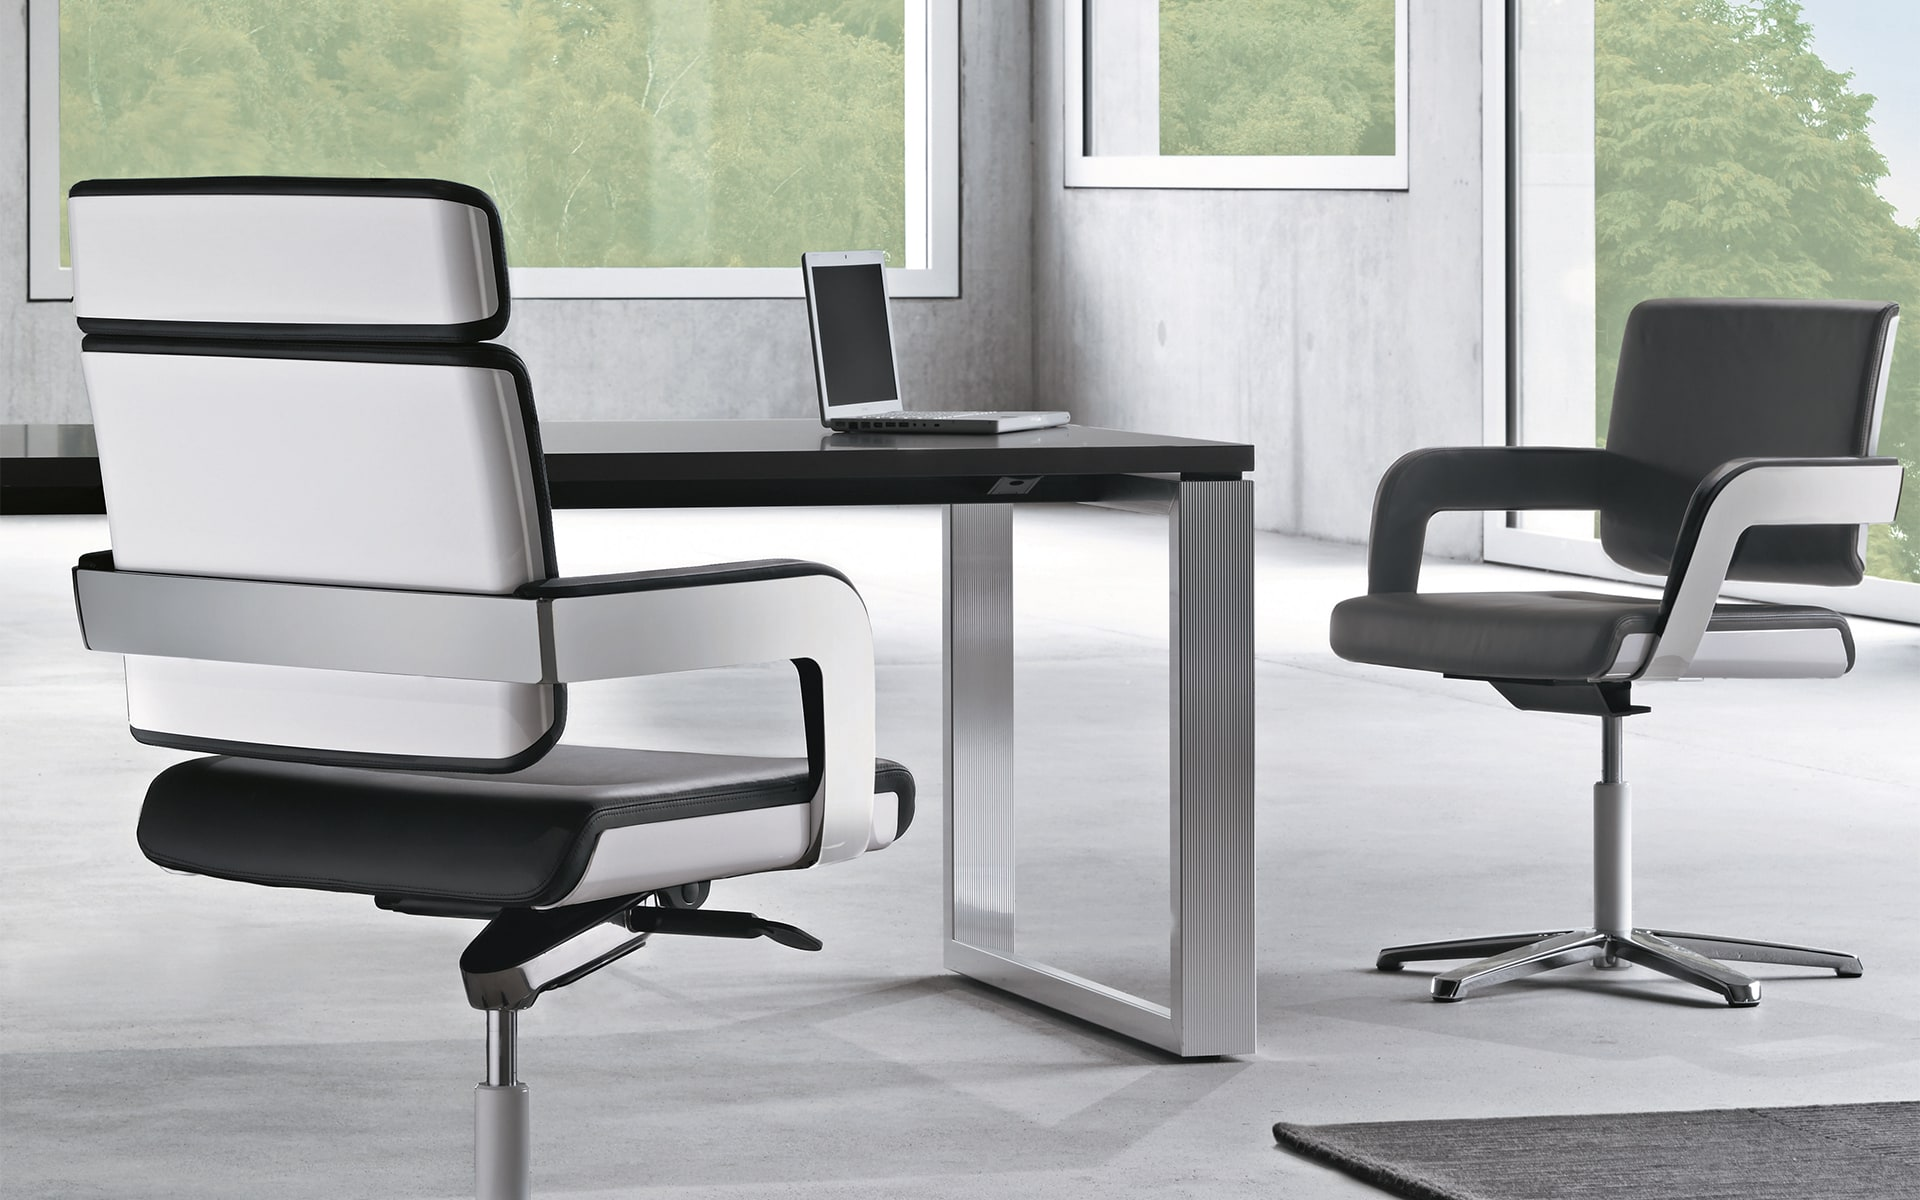 Black-and-white K+N Charta conference chairs by ITO Design in monochromatic workspace